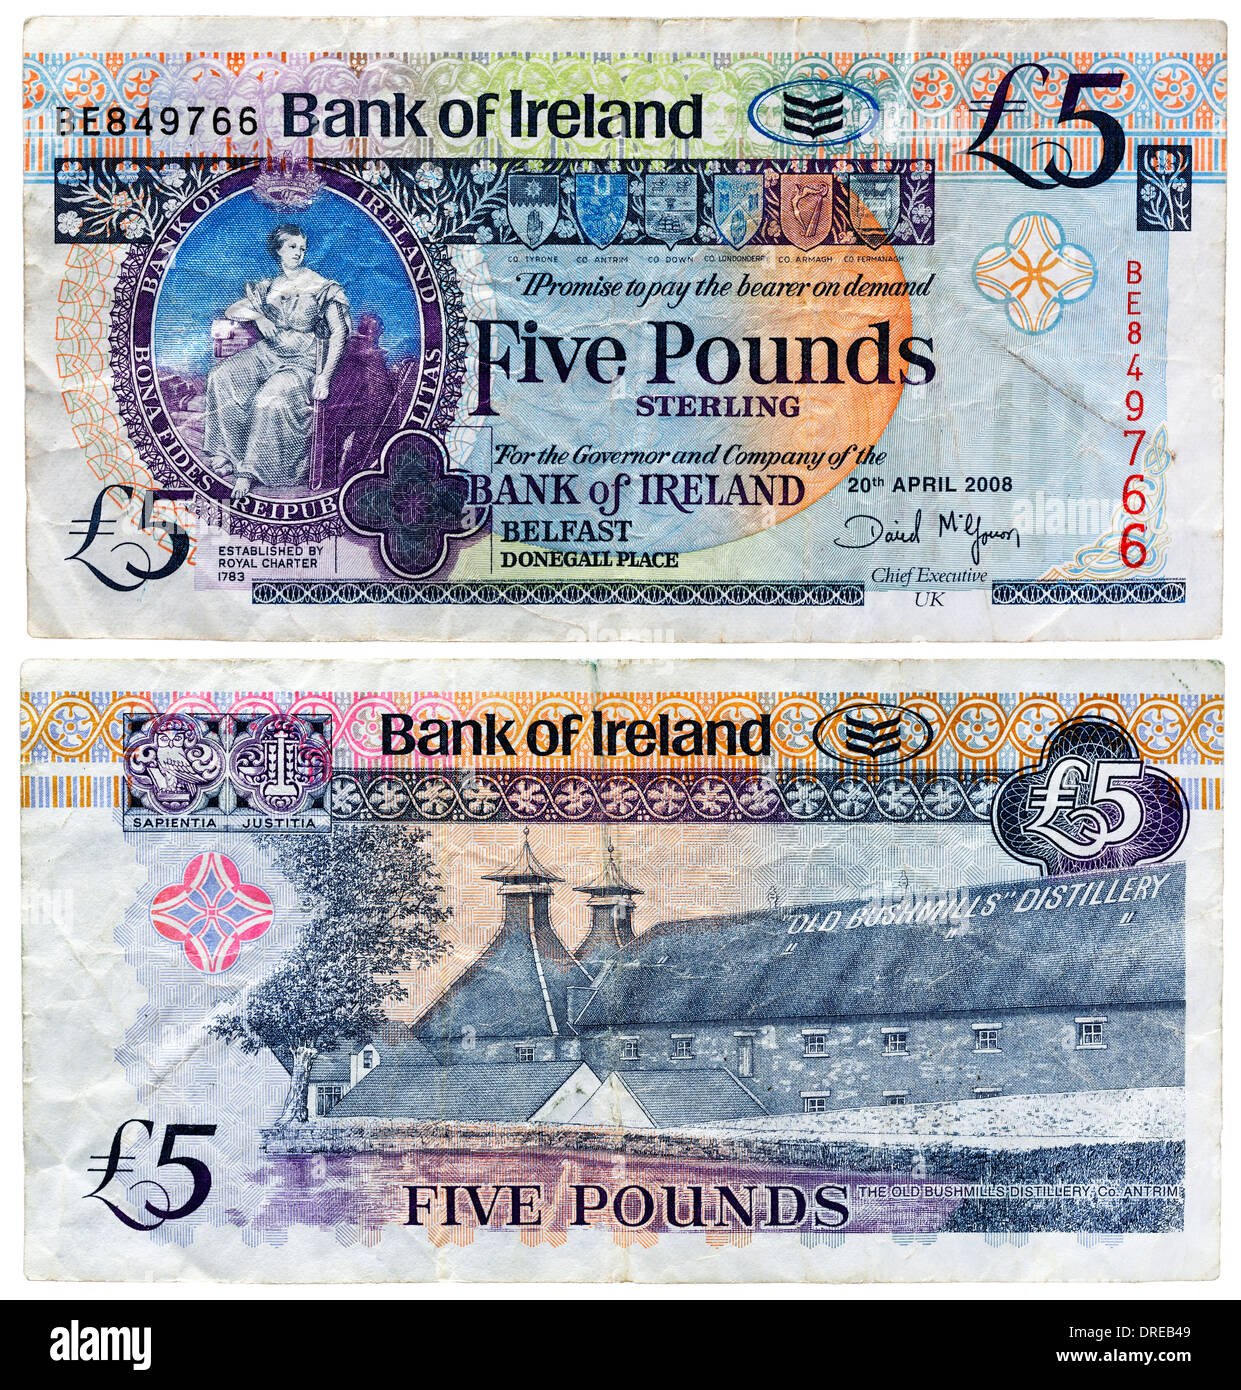 5 Pounds banknote, Hibernia seated and Old Bushmills Distillery, Northern Ireland, 2008 - Stock Image